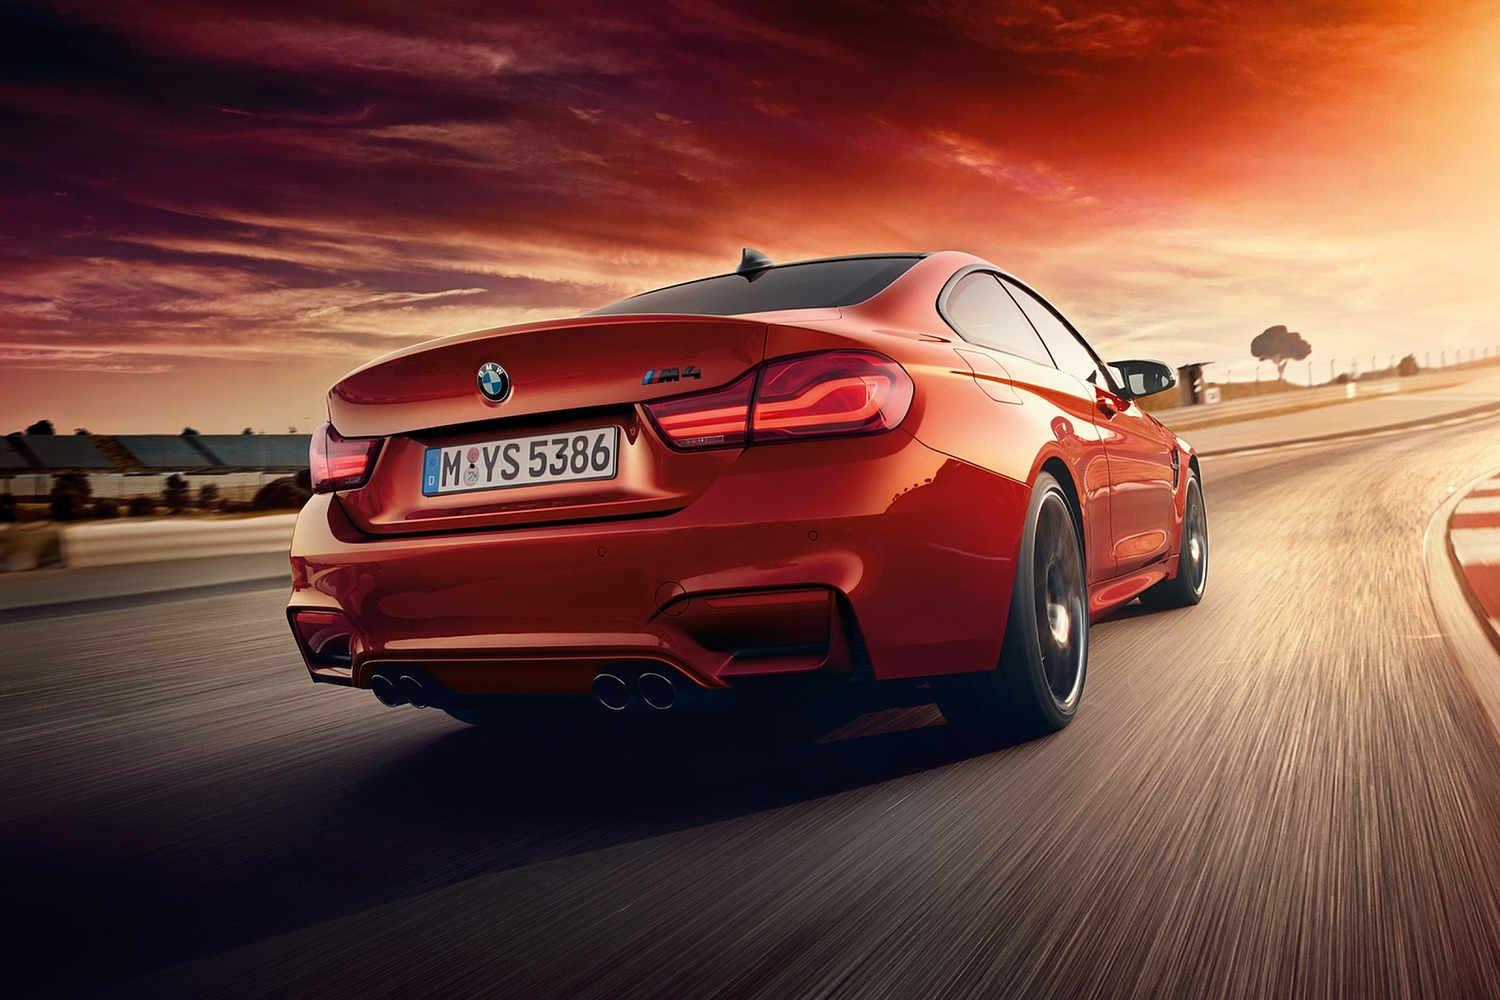 2018 BMW M4 Coupe Exterior Exterior. Competition Package Shown.